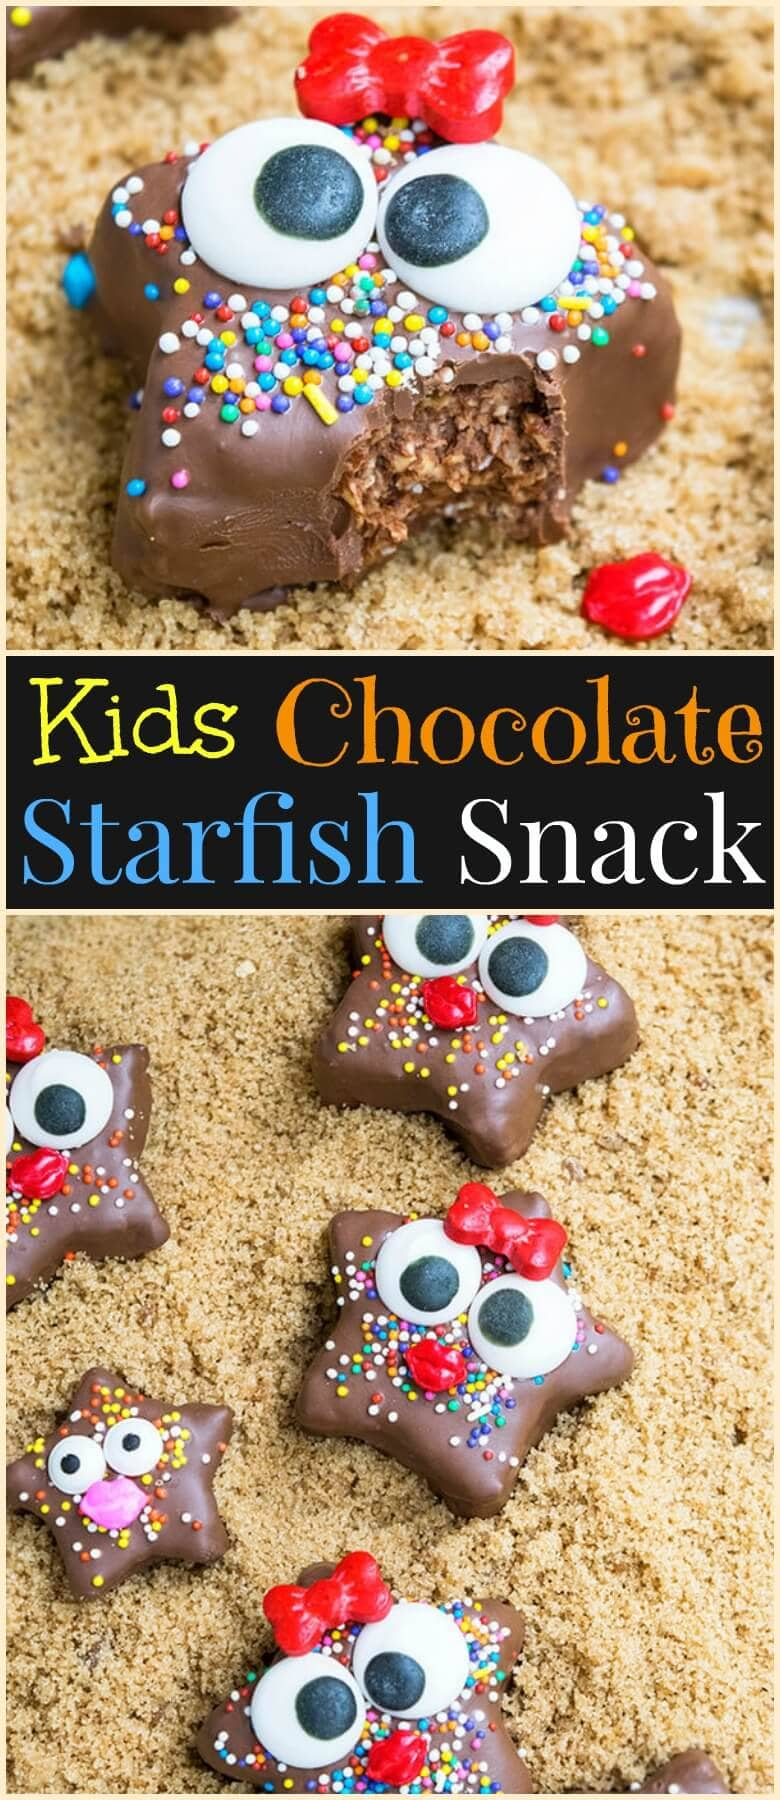 This cute kids chocolate starfish snack requires no baking and is made with healthy ingredients. It's a fun and easy activity to do with kids in the kitchen. ohsweetbasil.com